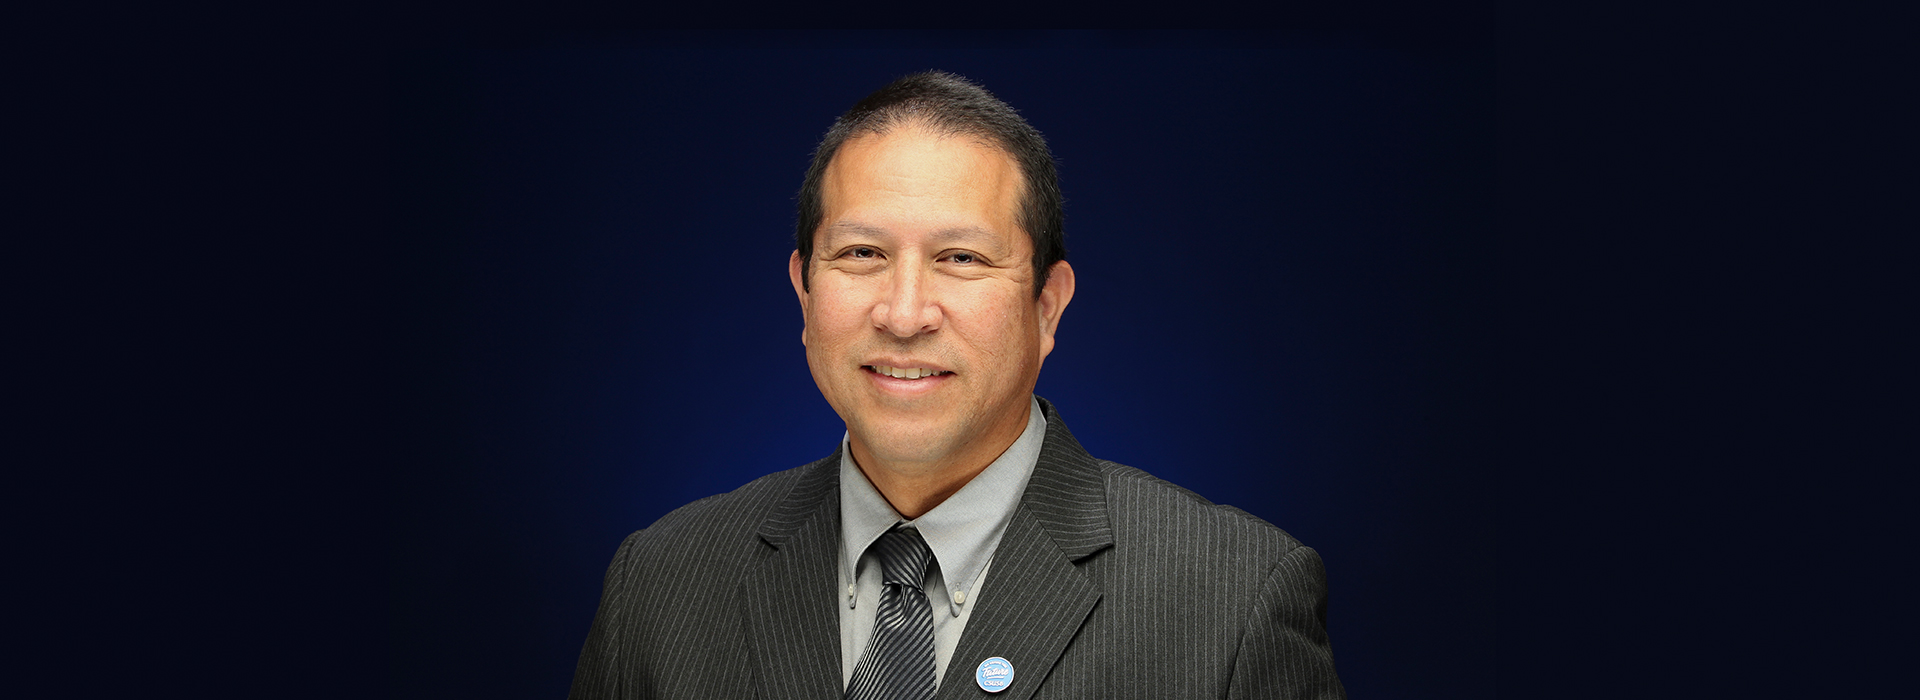 Native American educator and advocate appointed as CSUSB director of Tribal Relations